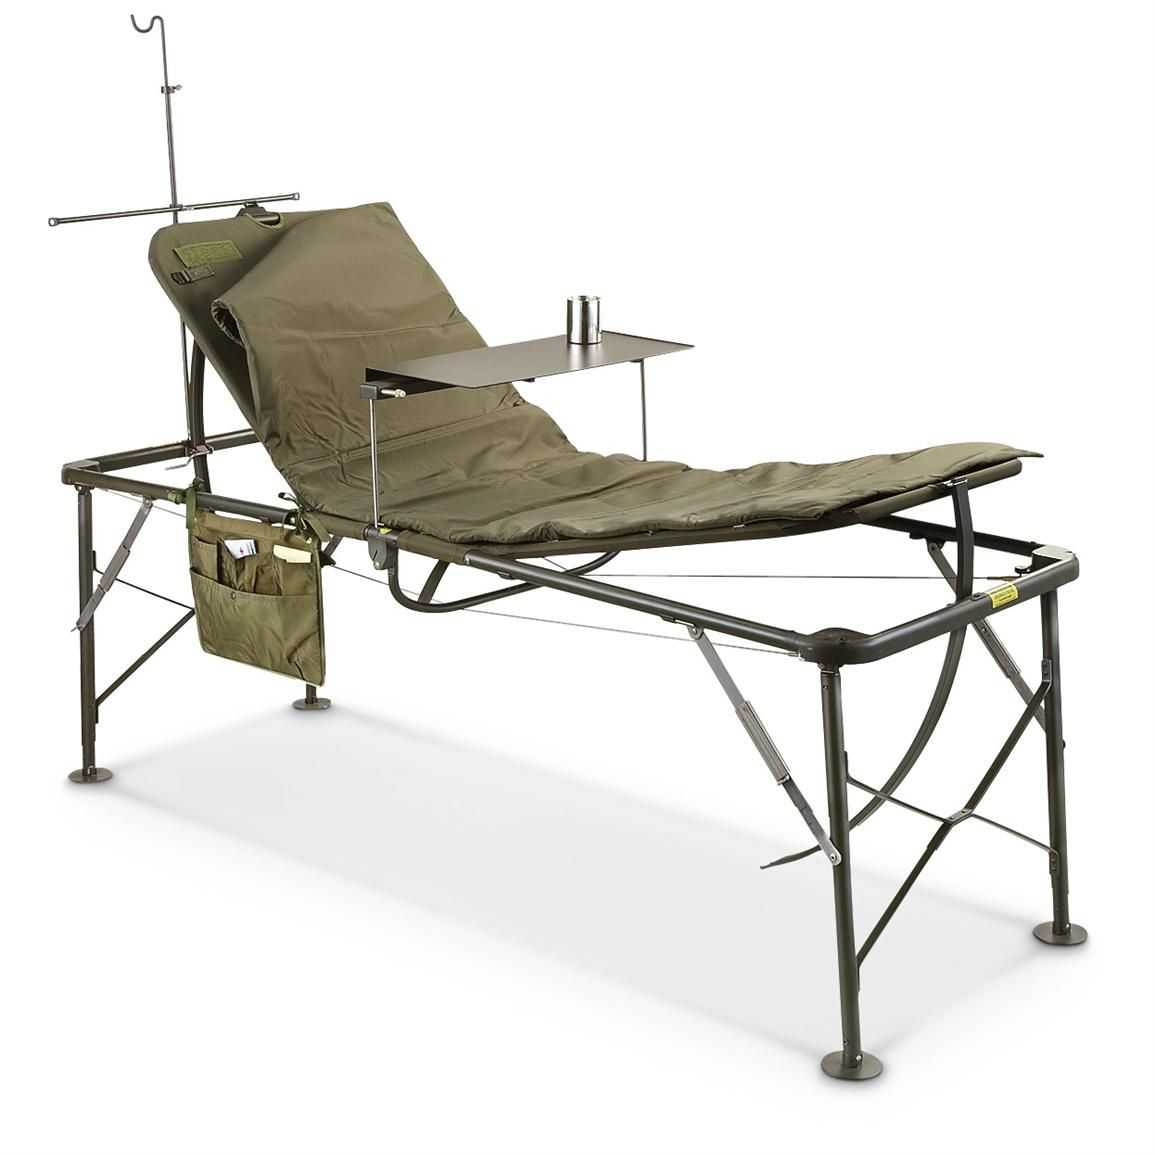 hospital chairs that convert to beds chair covers for couch us military surplus foldable field bed cot